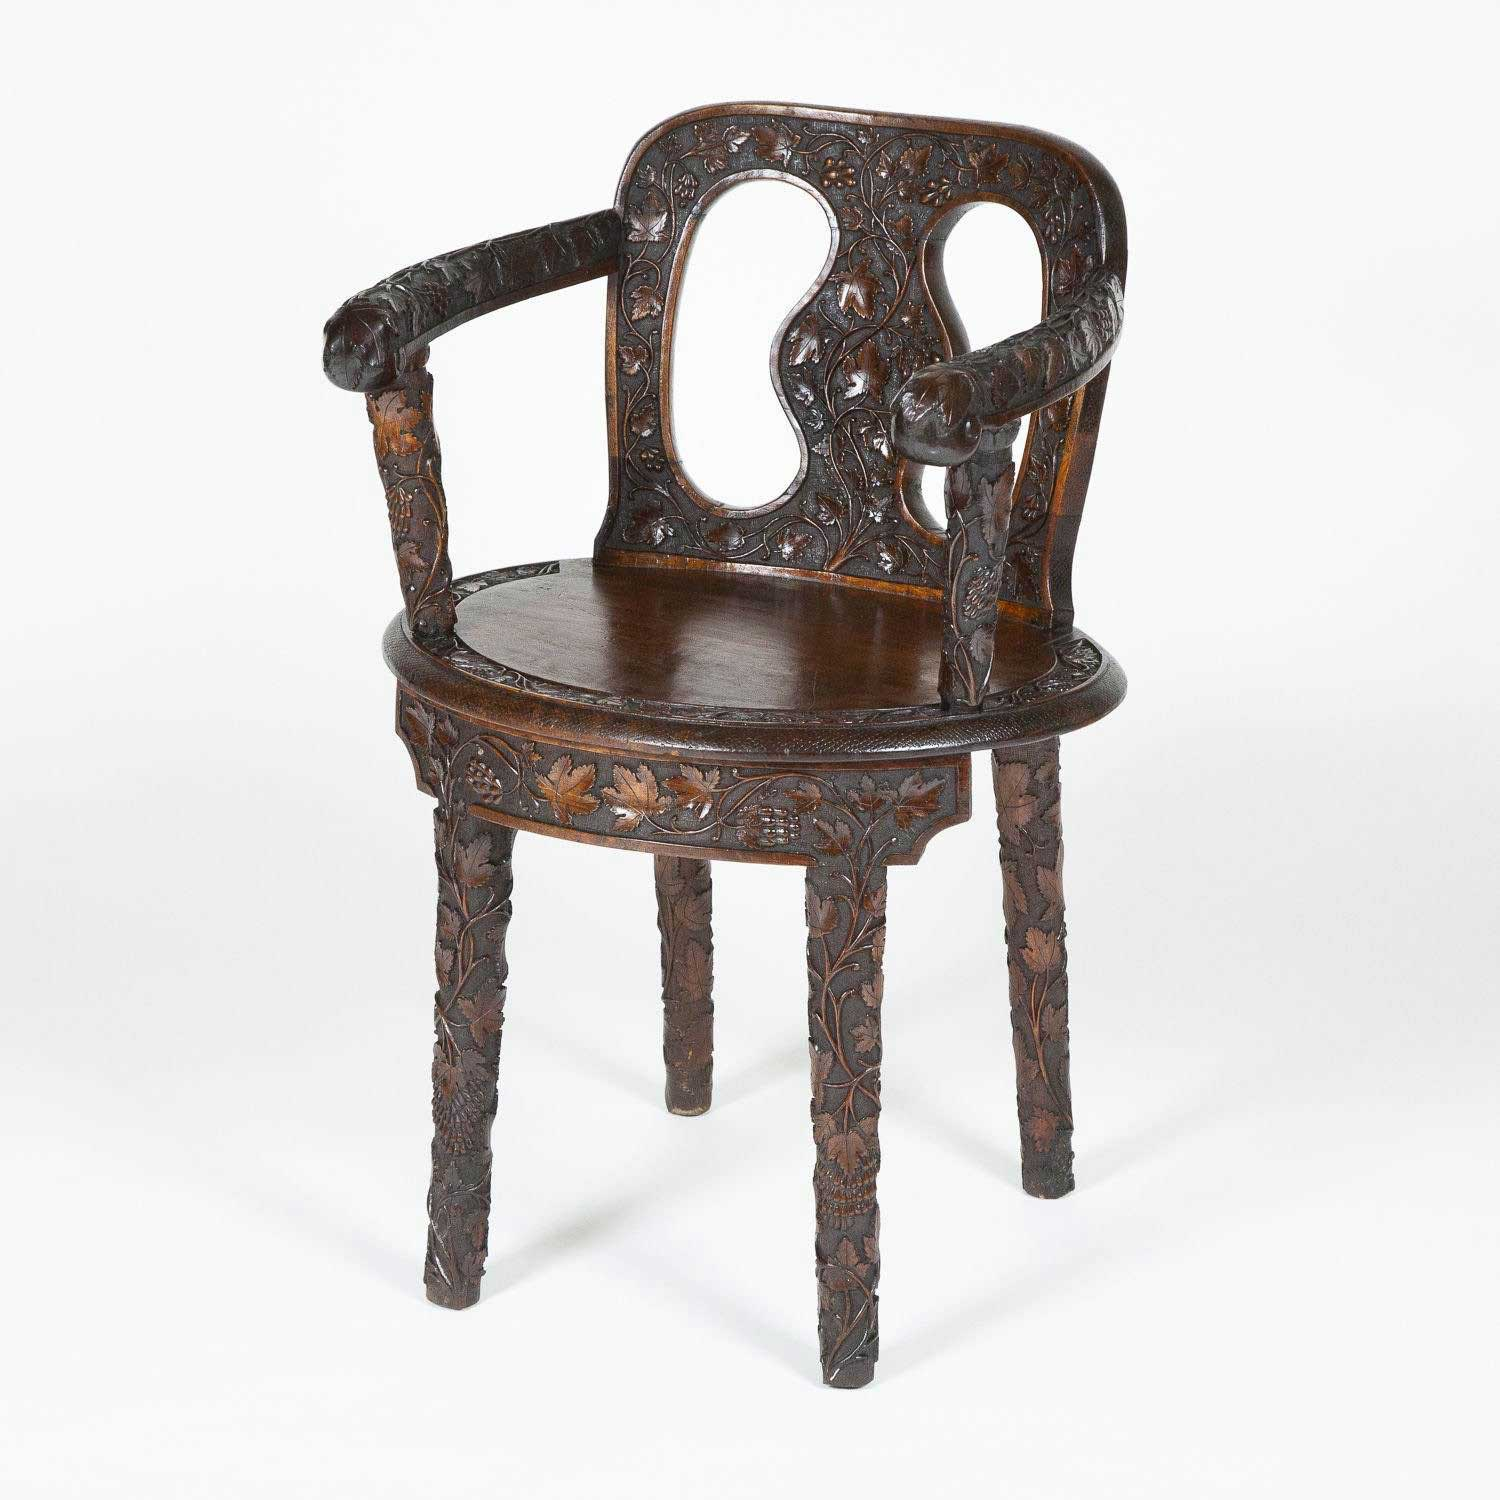 PAIR OF HALL CHAIRS CARVED WITH VINES